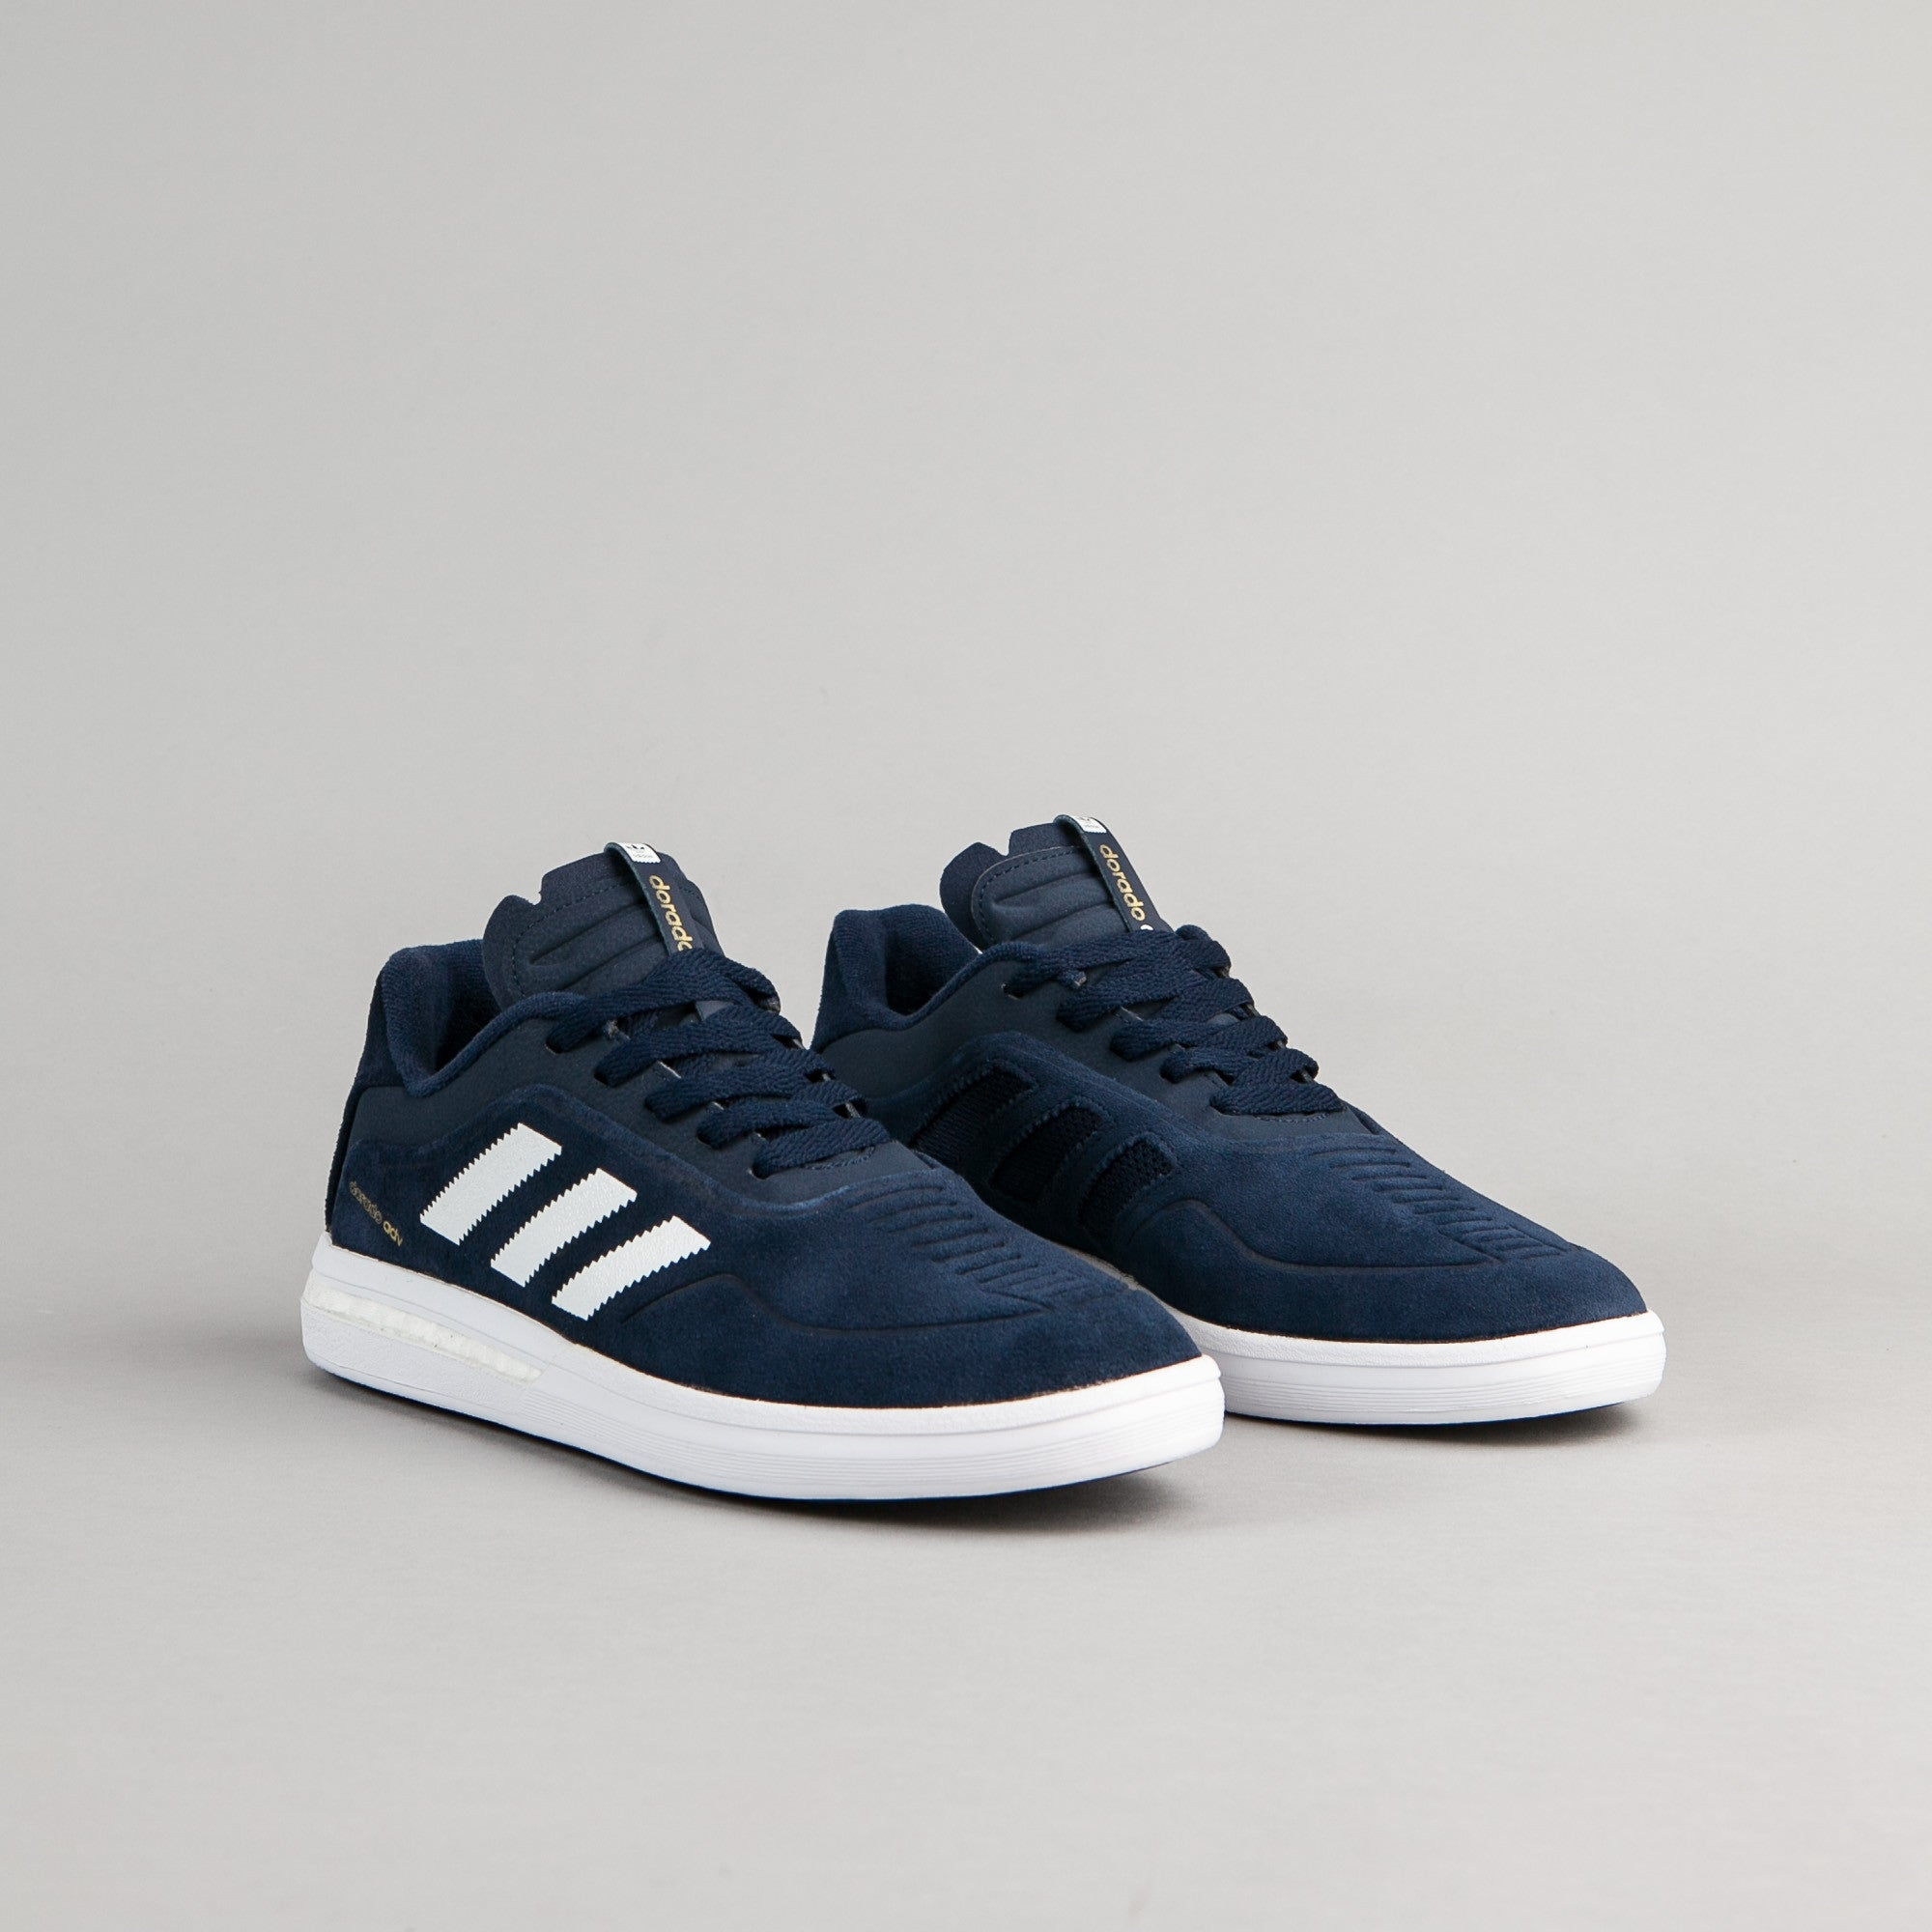 Adidas Dorado ADV Shoes - Collegiate Navy / White / Metallic Gold